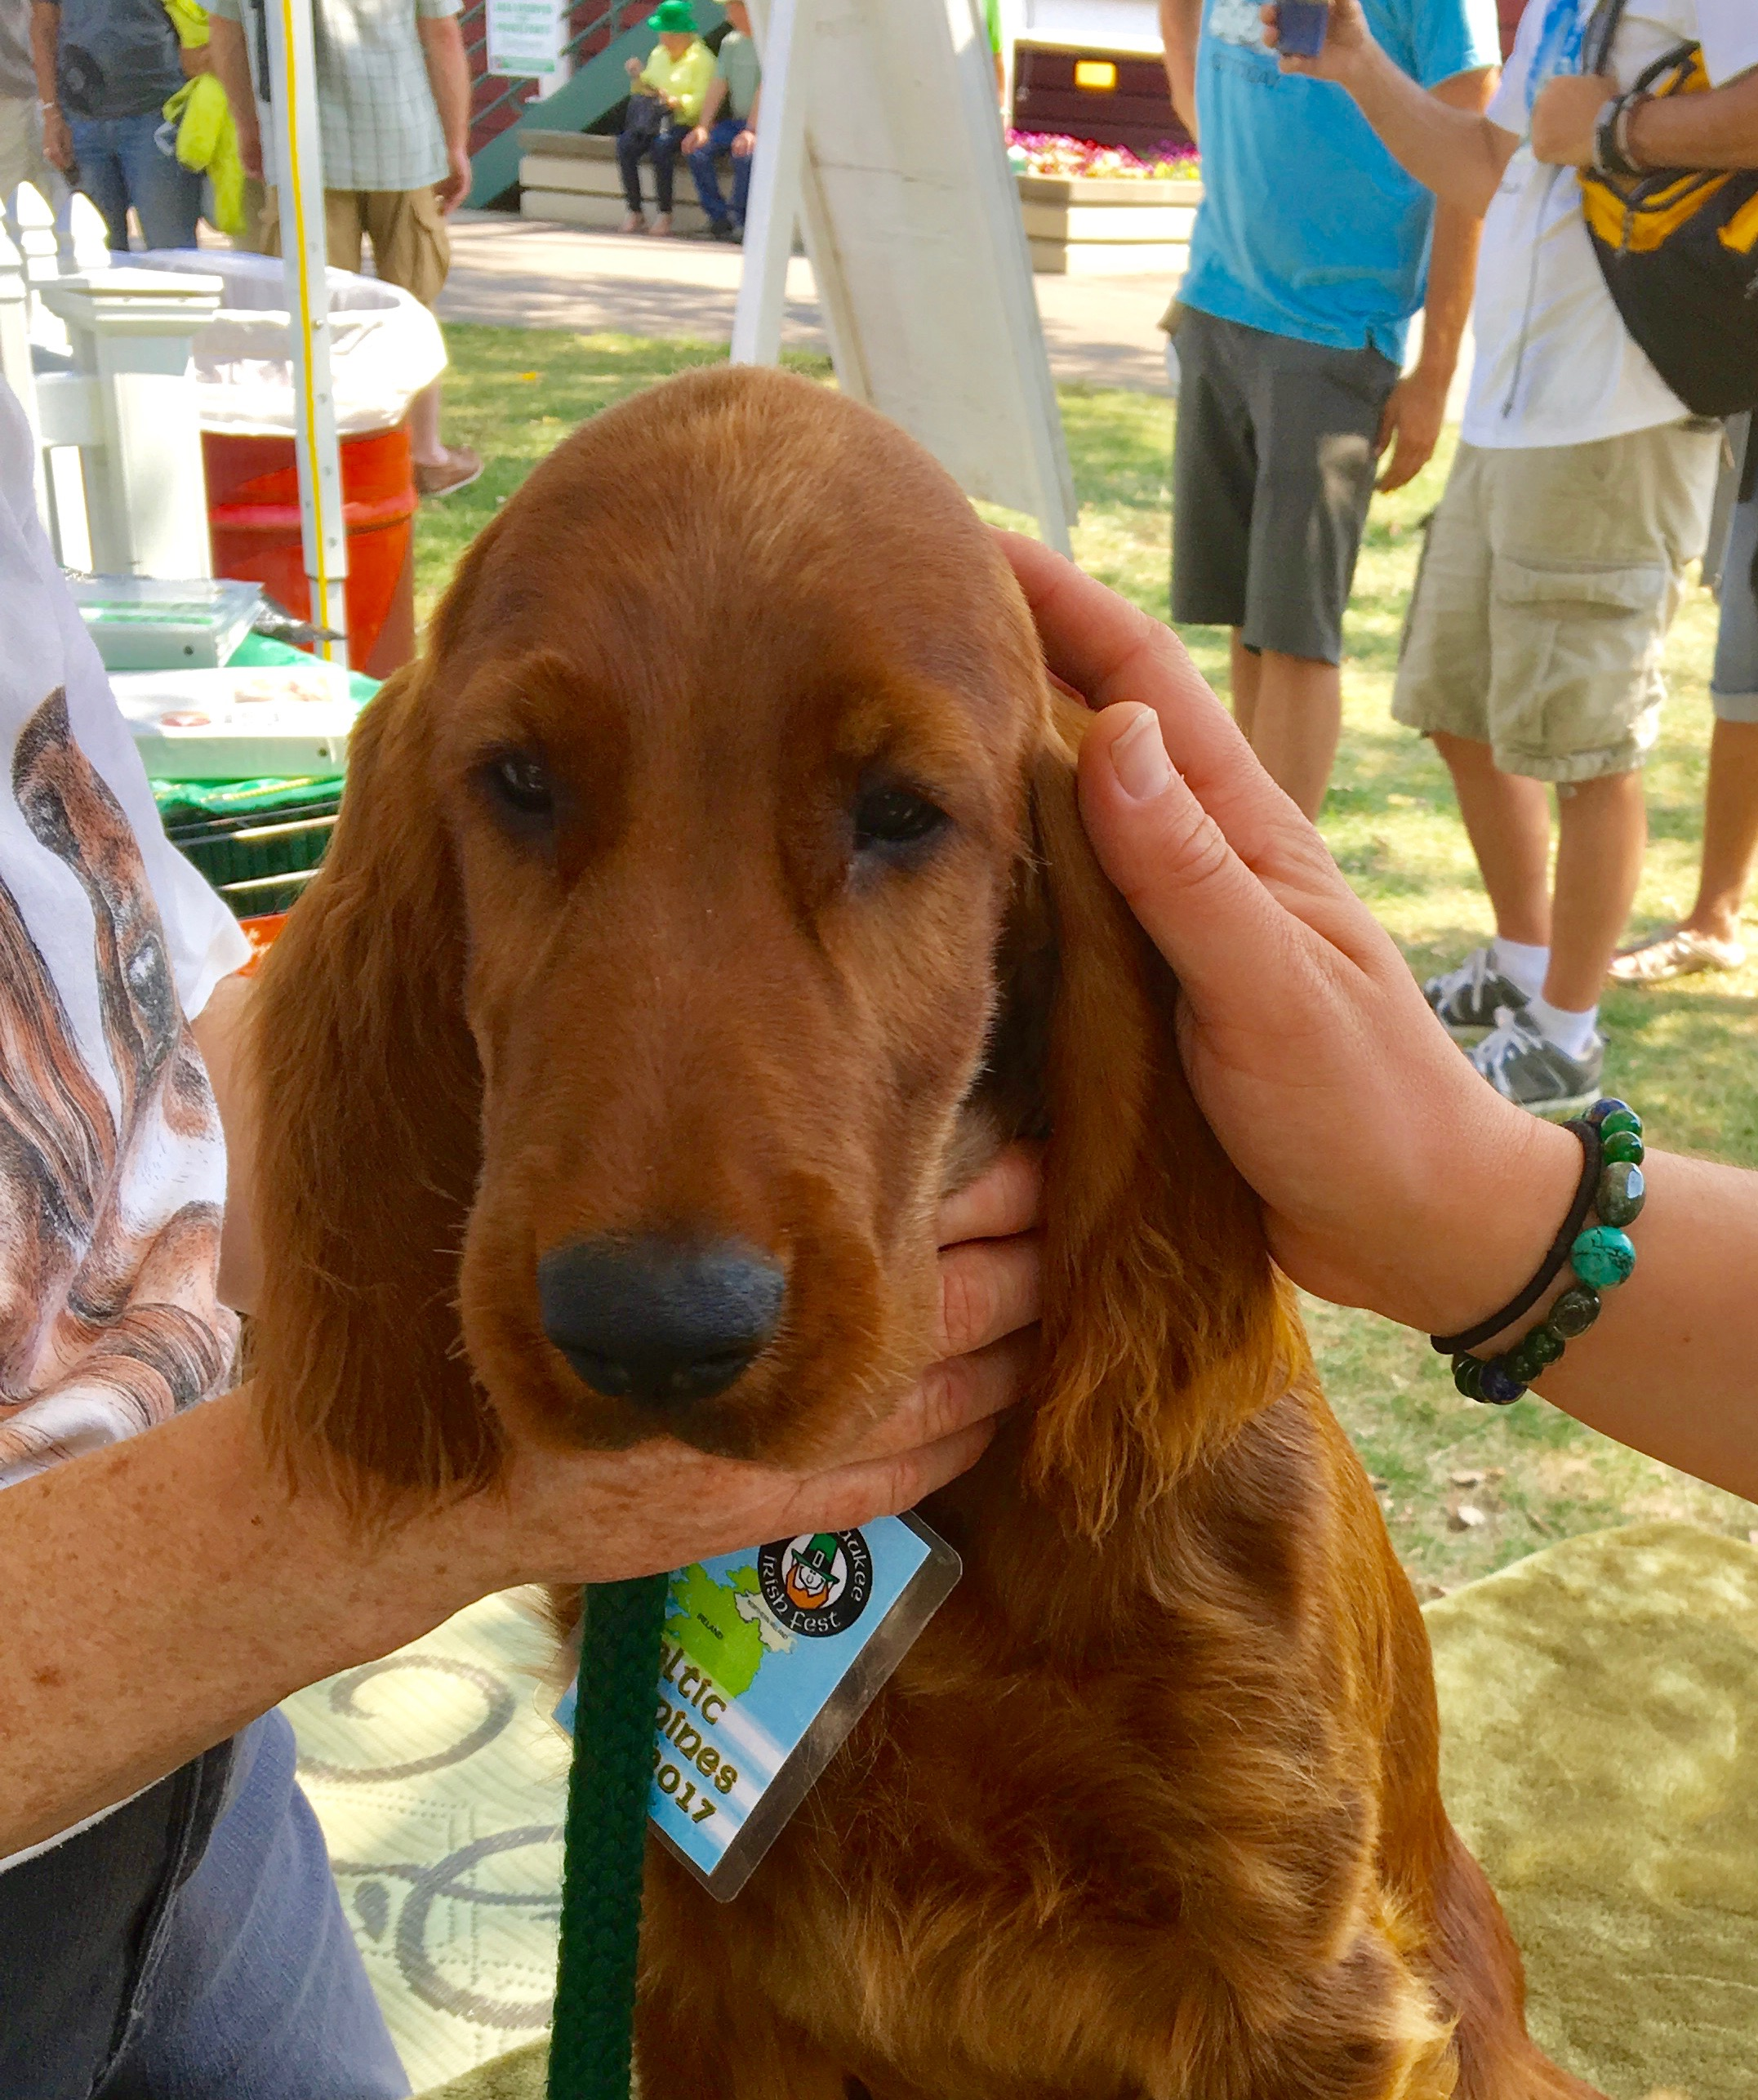 Irish Setter Puppy Being Petted